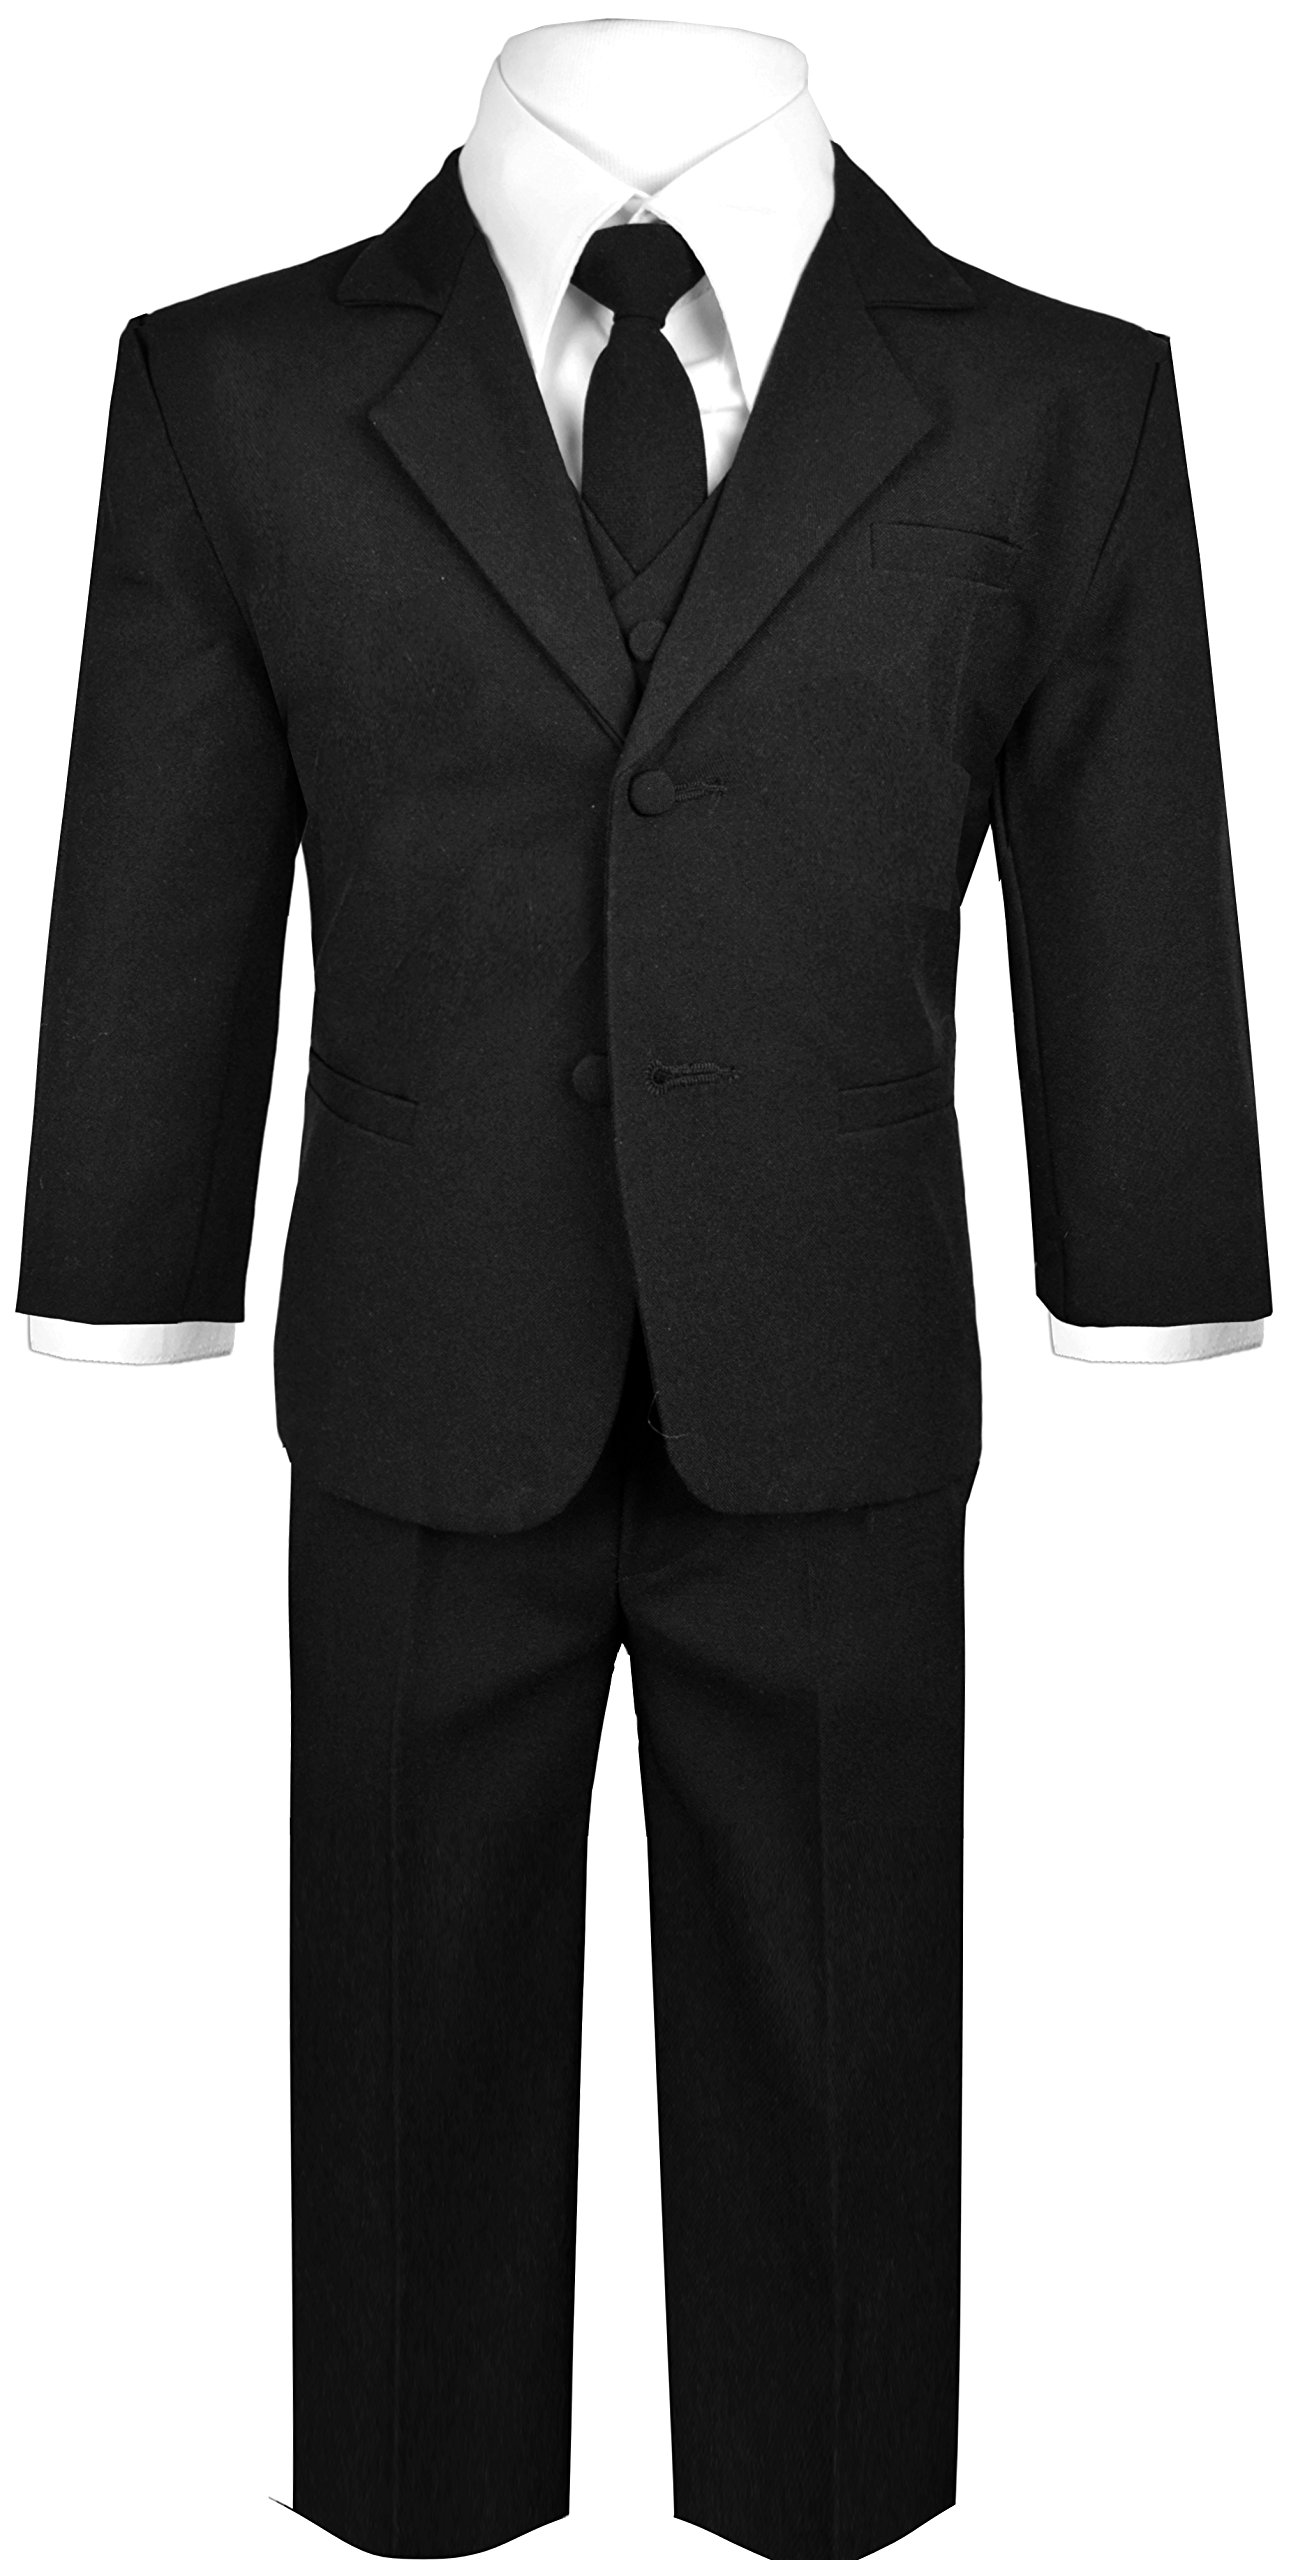 Boys Suit with Tie for toddlers and infants. (Large 12-18 Months, black) by Black n Bianco